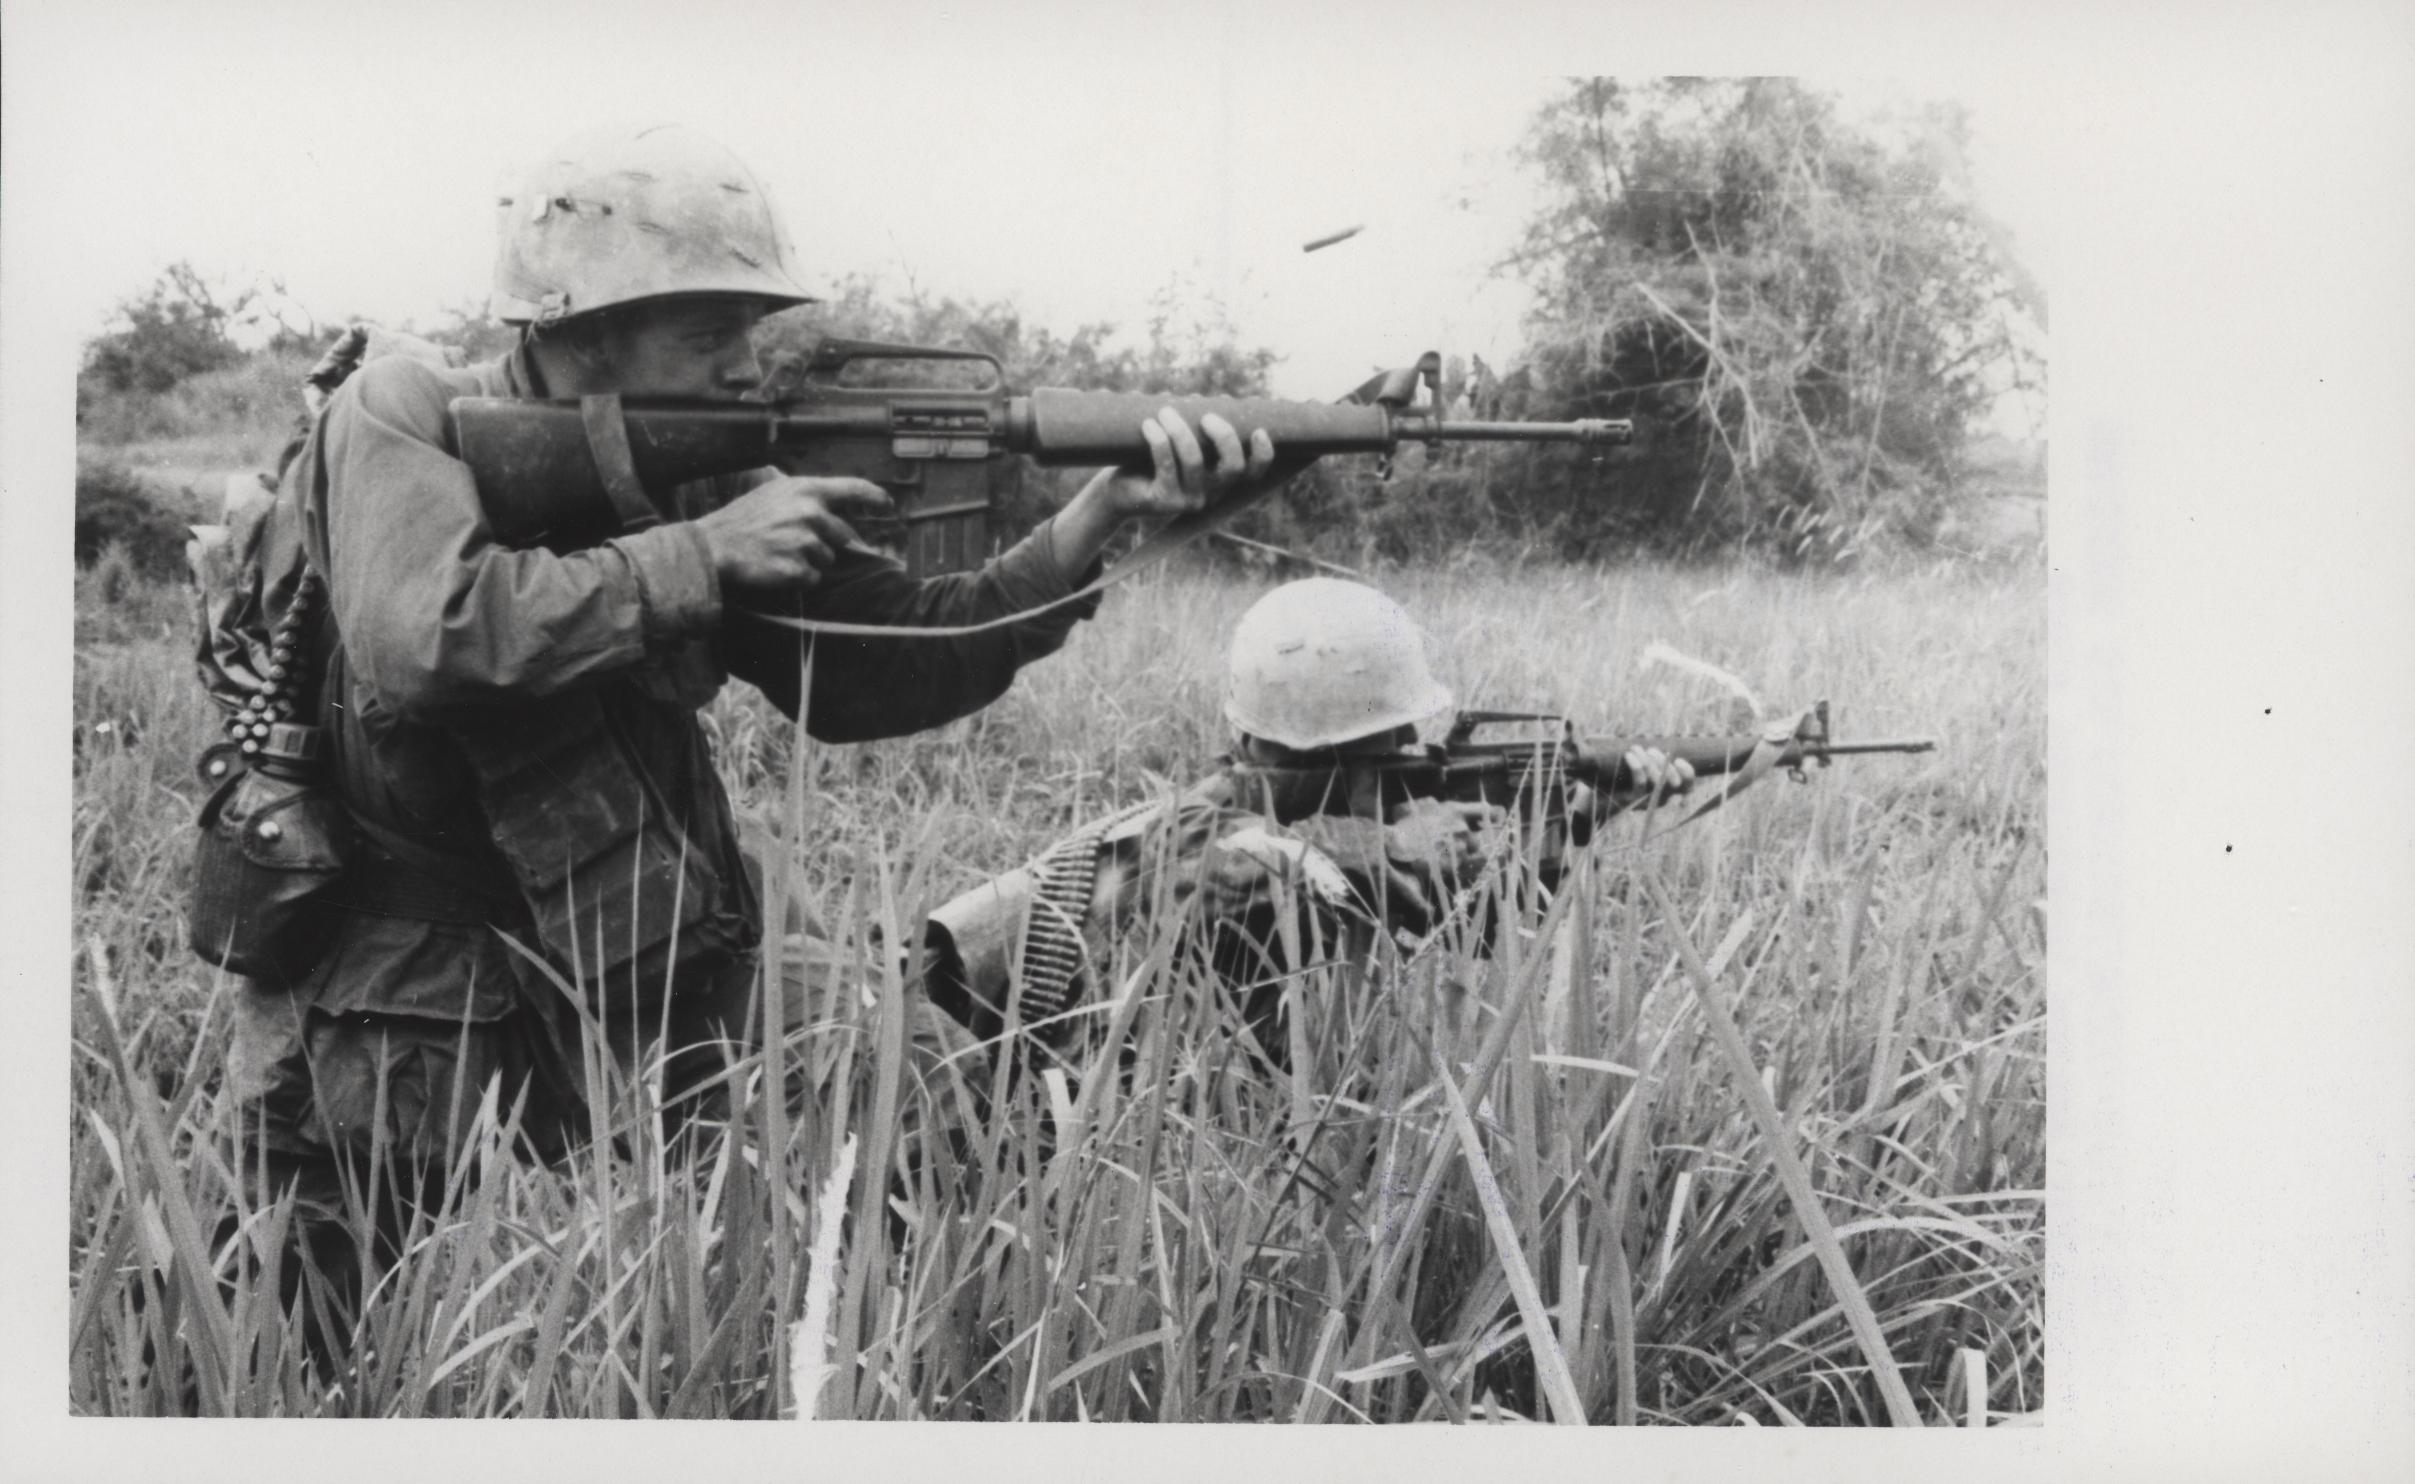 Marines on Operation Meade River, 1968